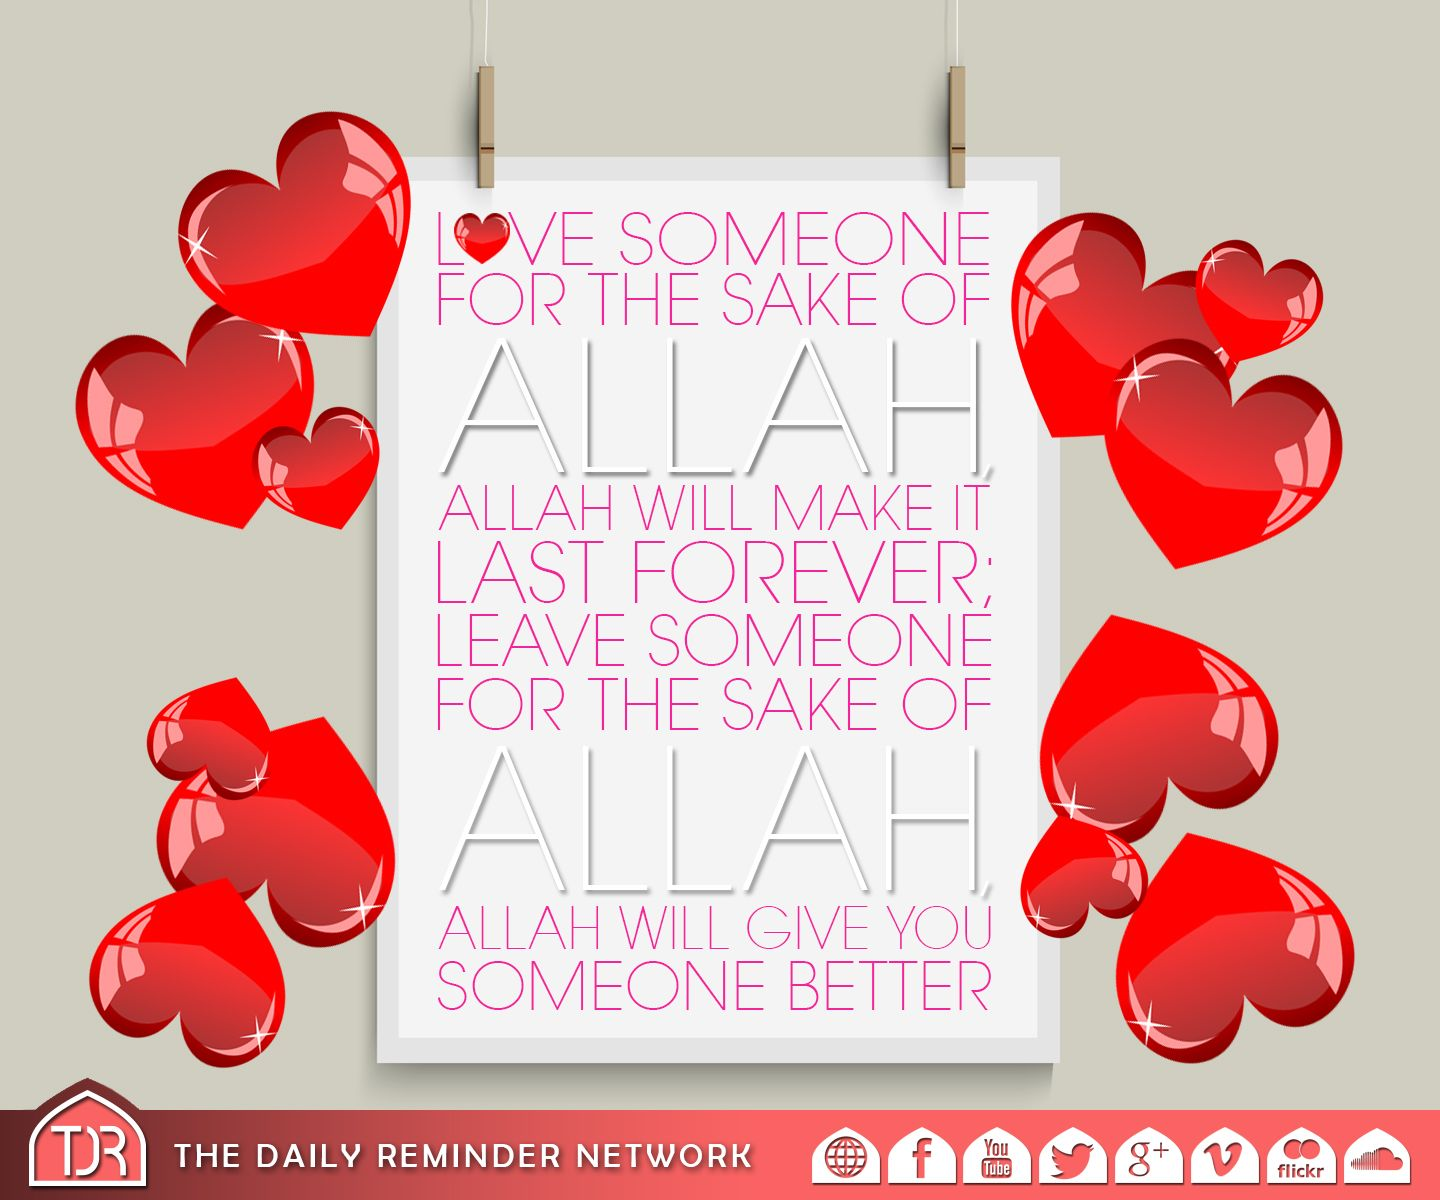 Love someone for the sake of Allah Allah will make it last forever Leave